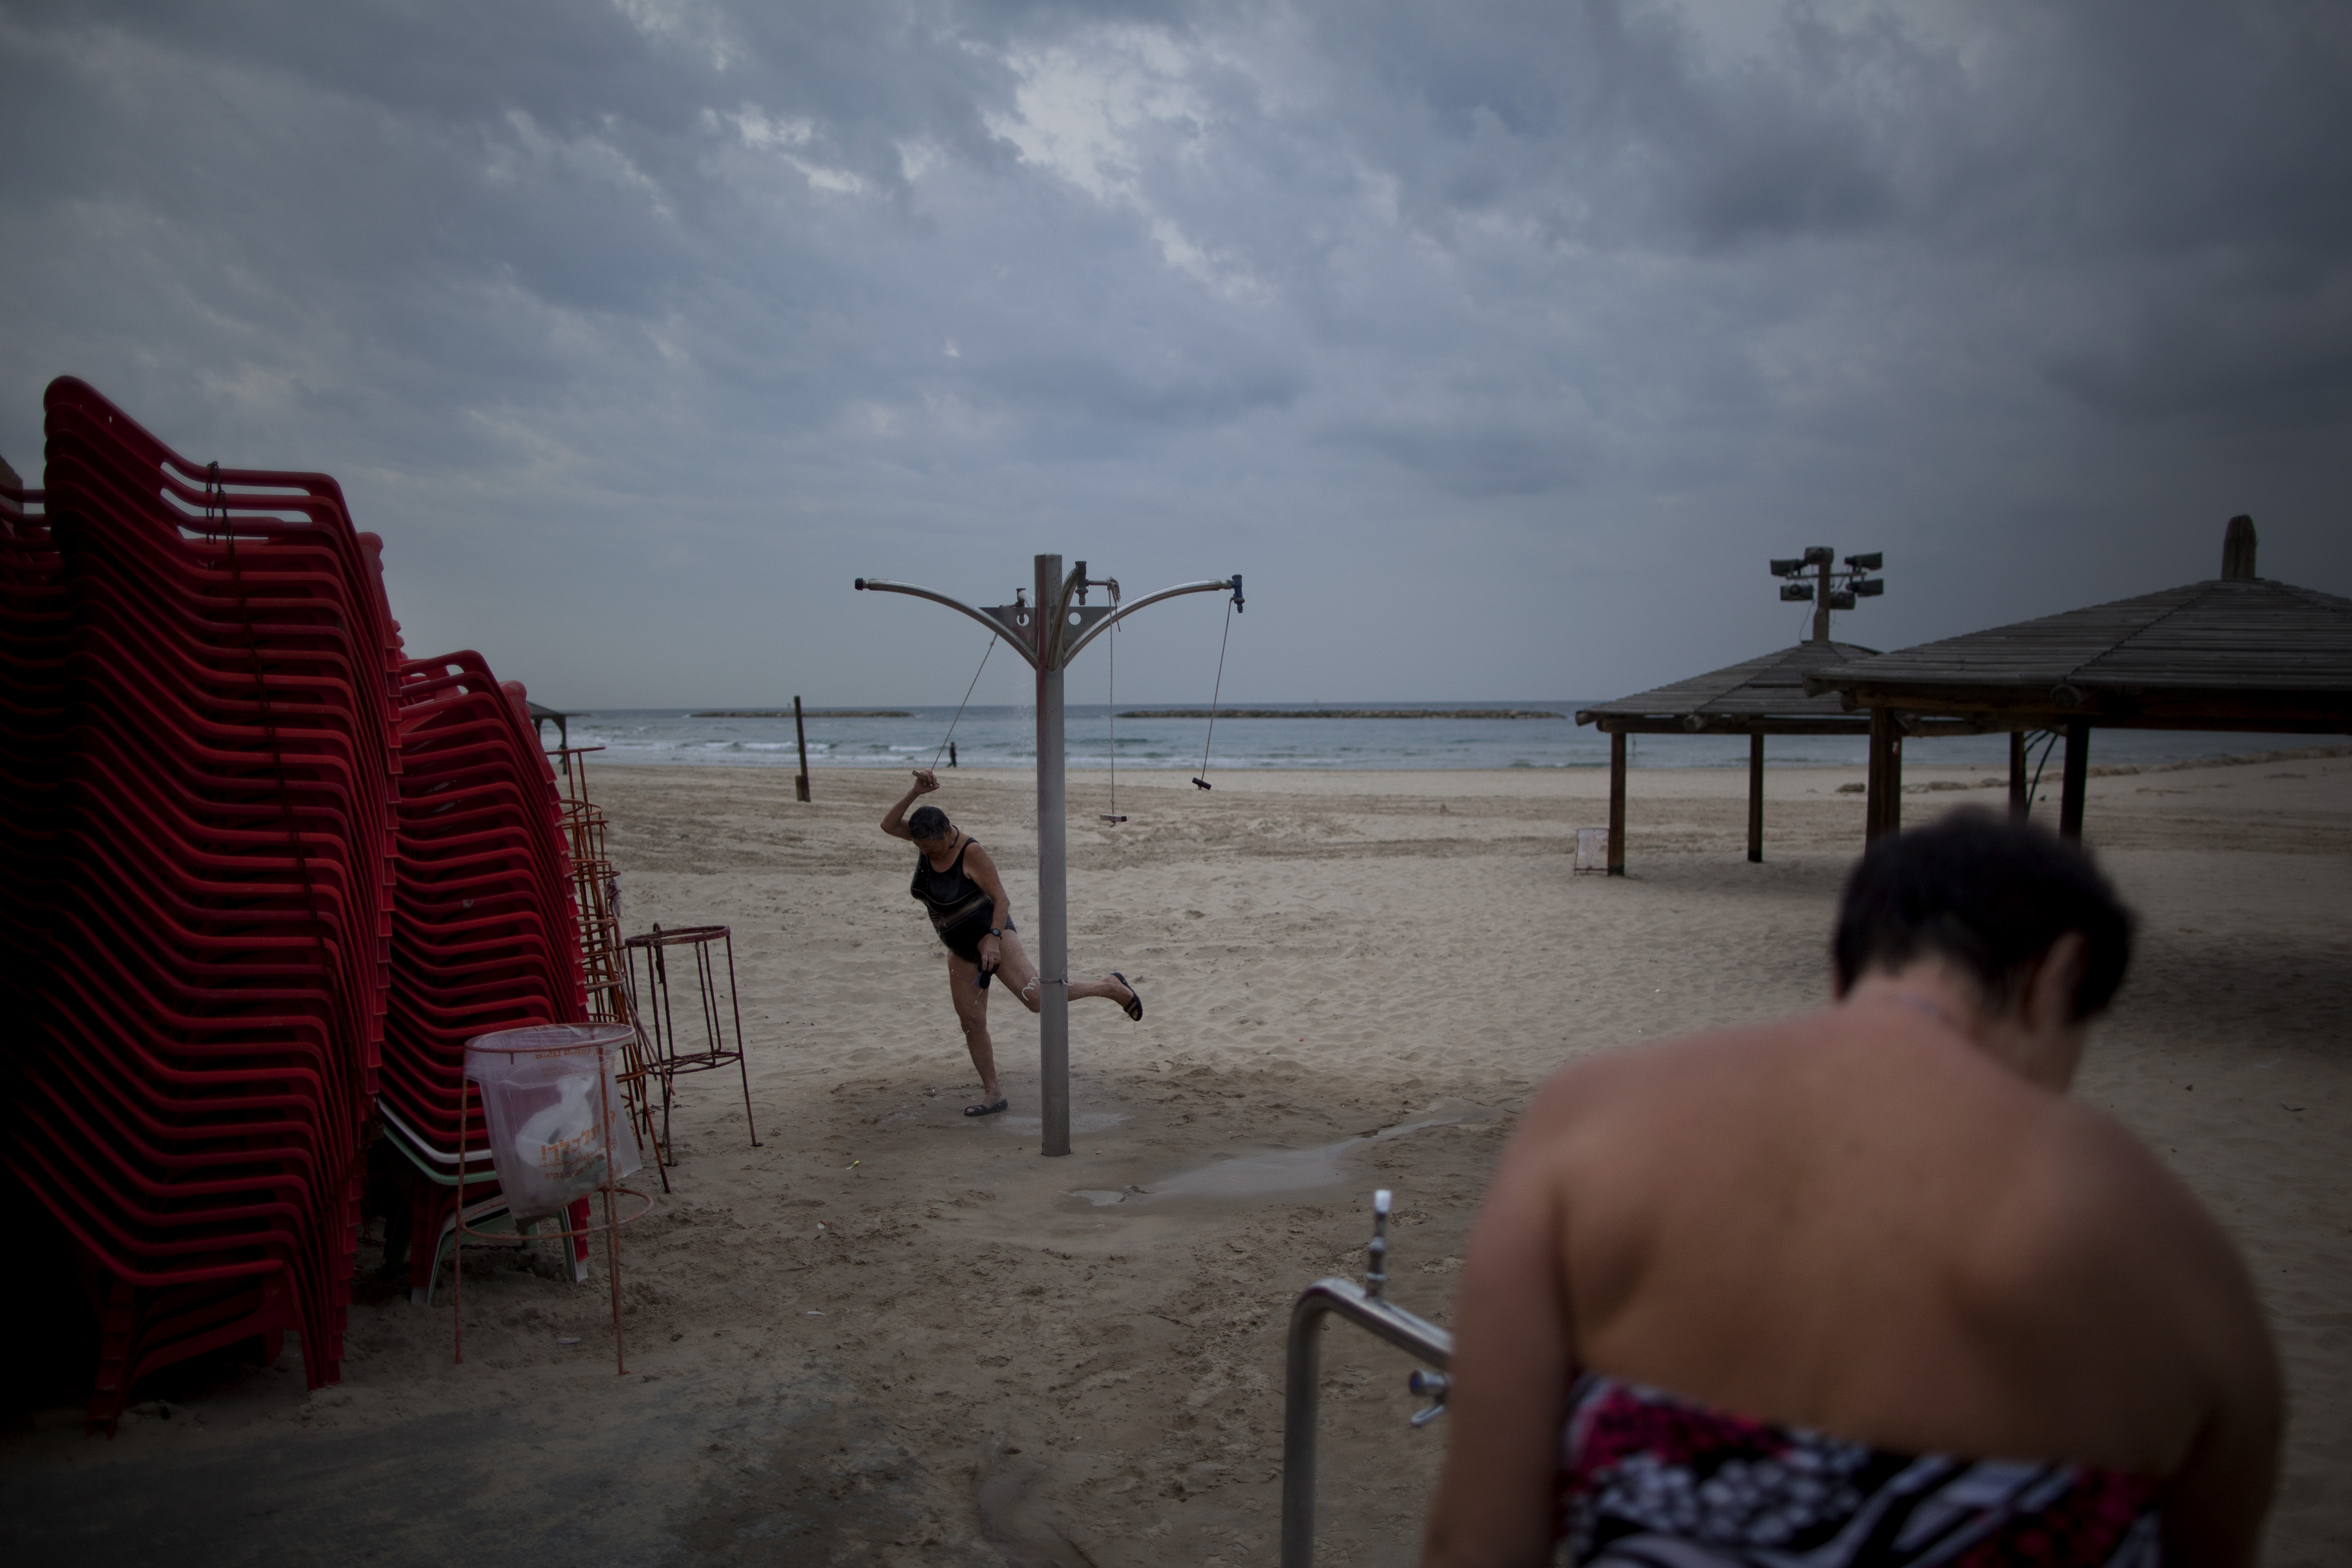 Two immigrants from the Ural region of the former Soviet Union rinse off after bathing in the Mediterranean Sea on an early December morning in Tel Aviv. Many Soviet immigrants gather at the beach for a traditional winter dip, the closest substitute to the freezing waters of the former Soviet Union.